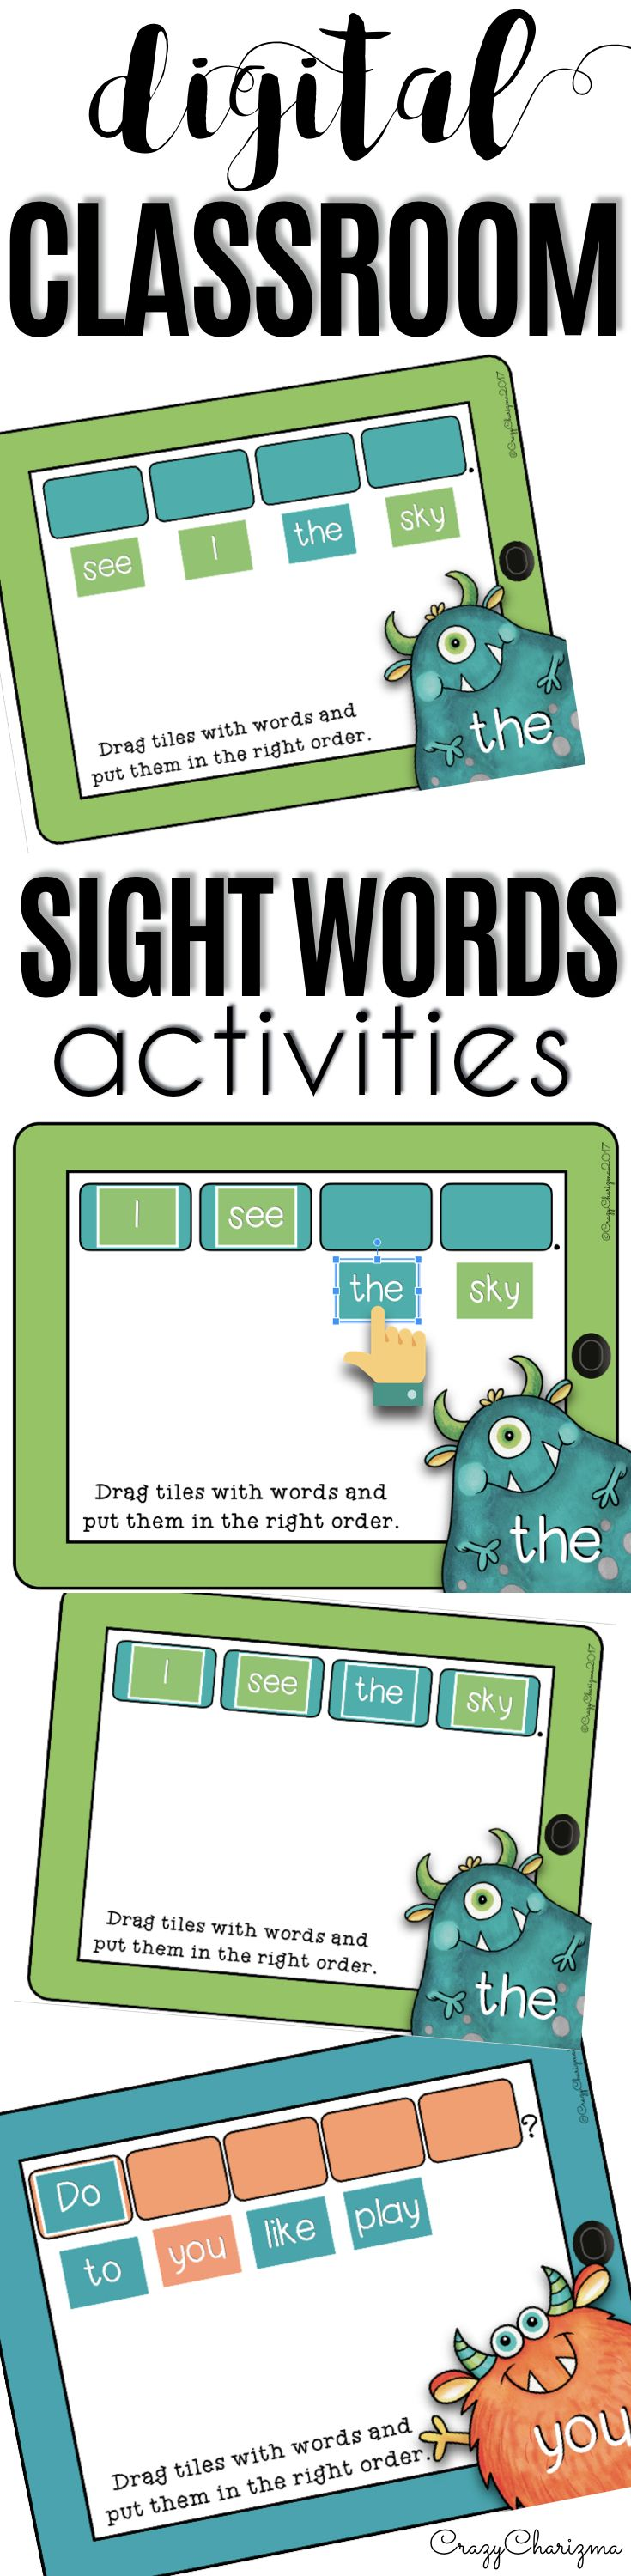 Have you been looking for fun 1:1 Sight words activities to use in Google Classroom? Try this digital teaching resource - MONSTERS. Help students become more comfortable with reading 50 sentences with high-frequency words. Use the Google Classroom packet in kindergarten, first grade and second grade during your literacy block, daily 5, guided reading, spelling, RTI, or during literacy centers. Paperless resources can be fun!   CrazyCharizma